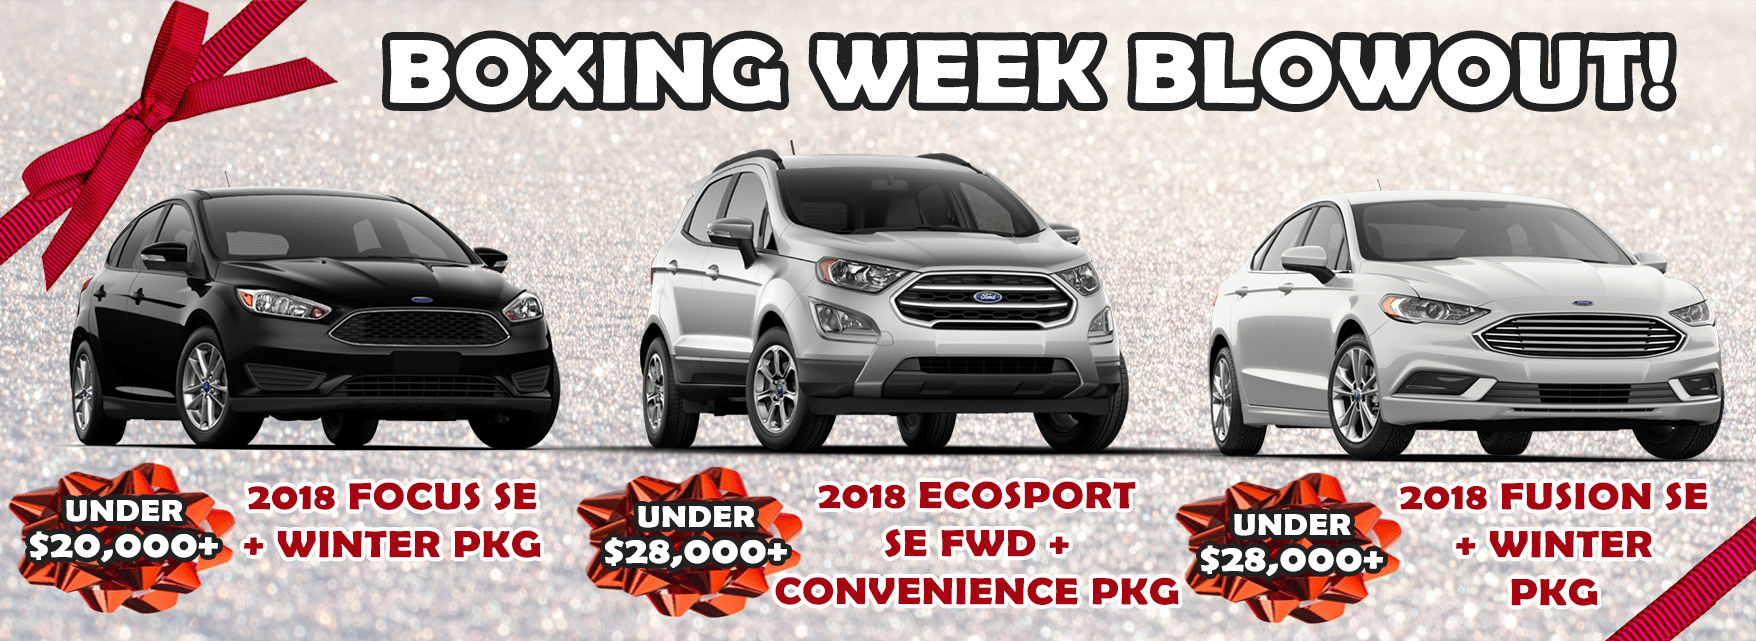 Rose City Ford Boxing Week Sale